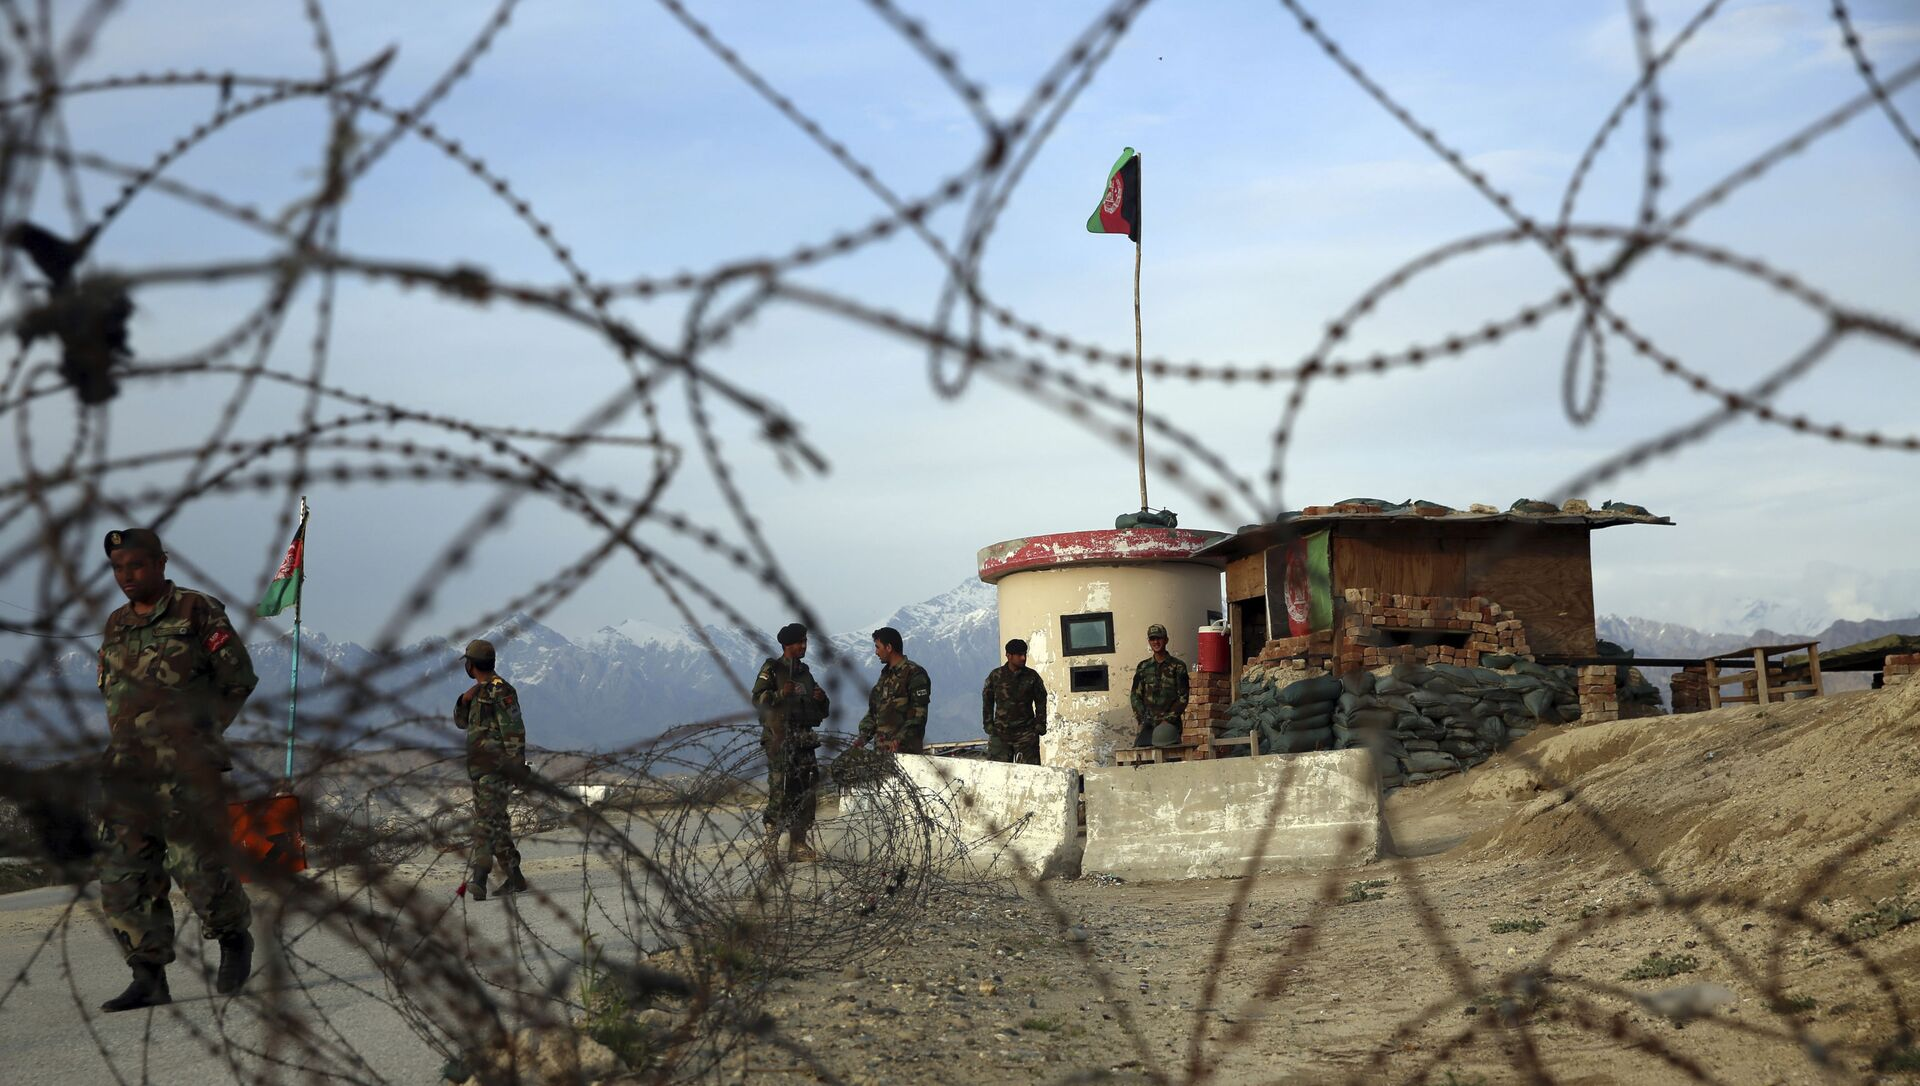 Afghan National Army soldiers stand guard at a checkpoint near the Bagram base in northern Kabul, Afghanistan, Wednesday, 8 April 2020 - Sputnik International, 1920, 04.08.2021